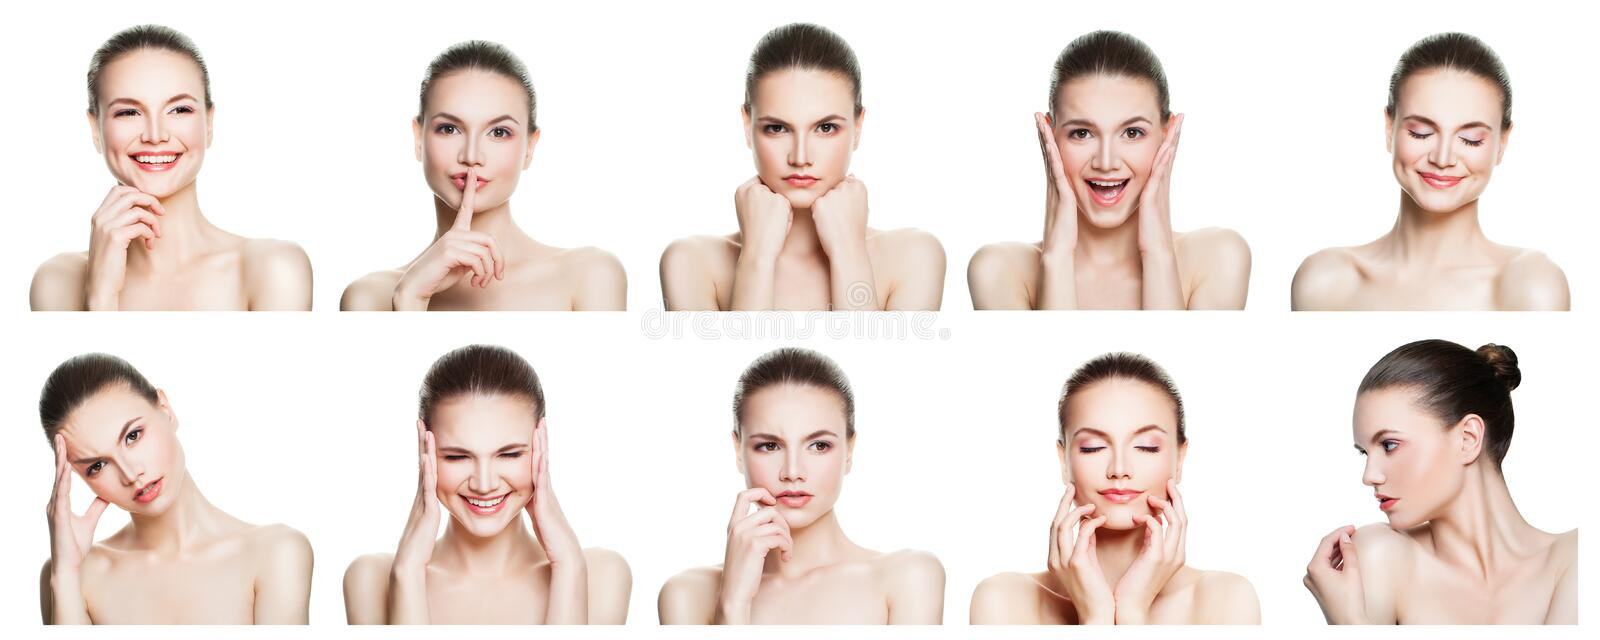 Collage of negative and positive female face expressions royalty free stock photography